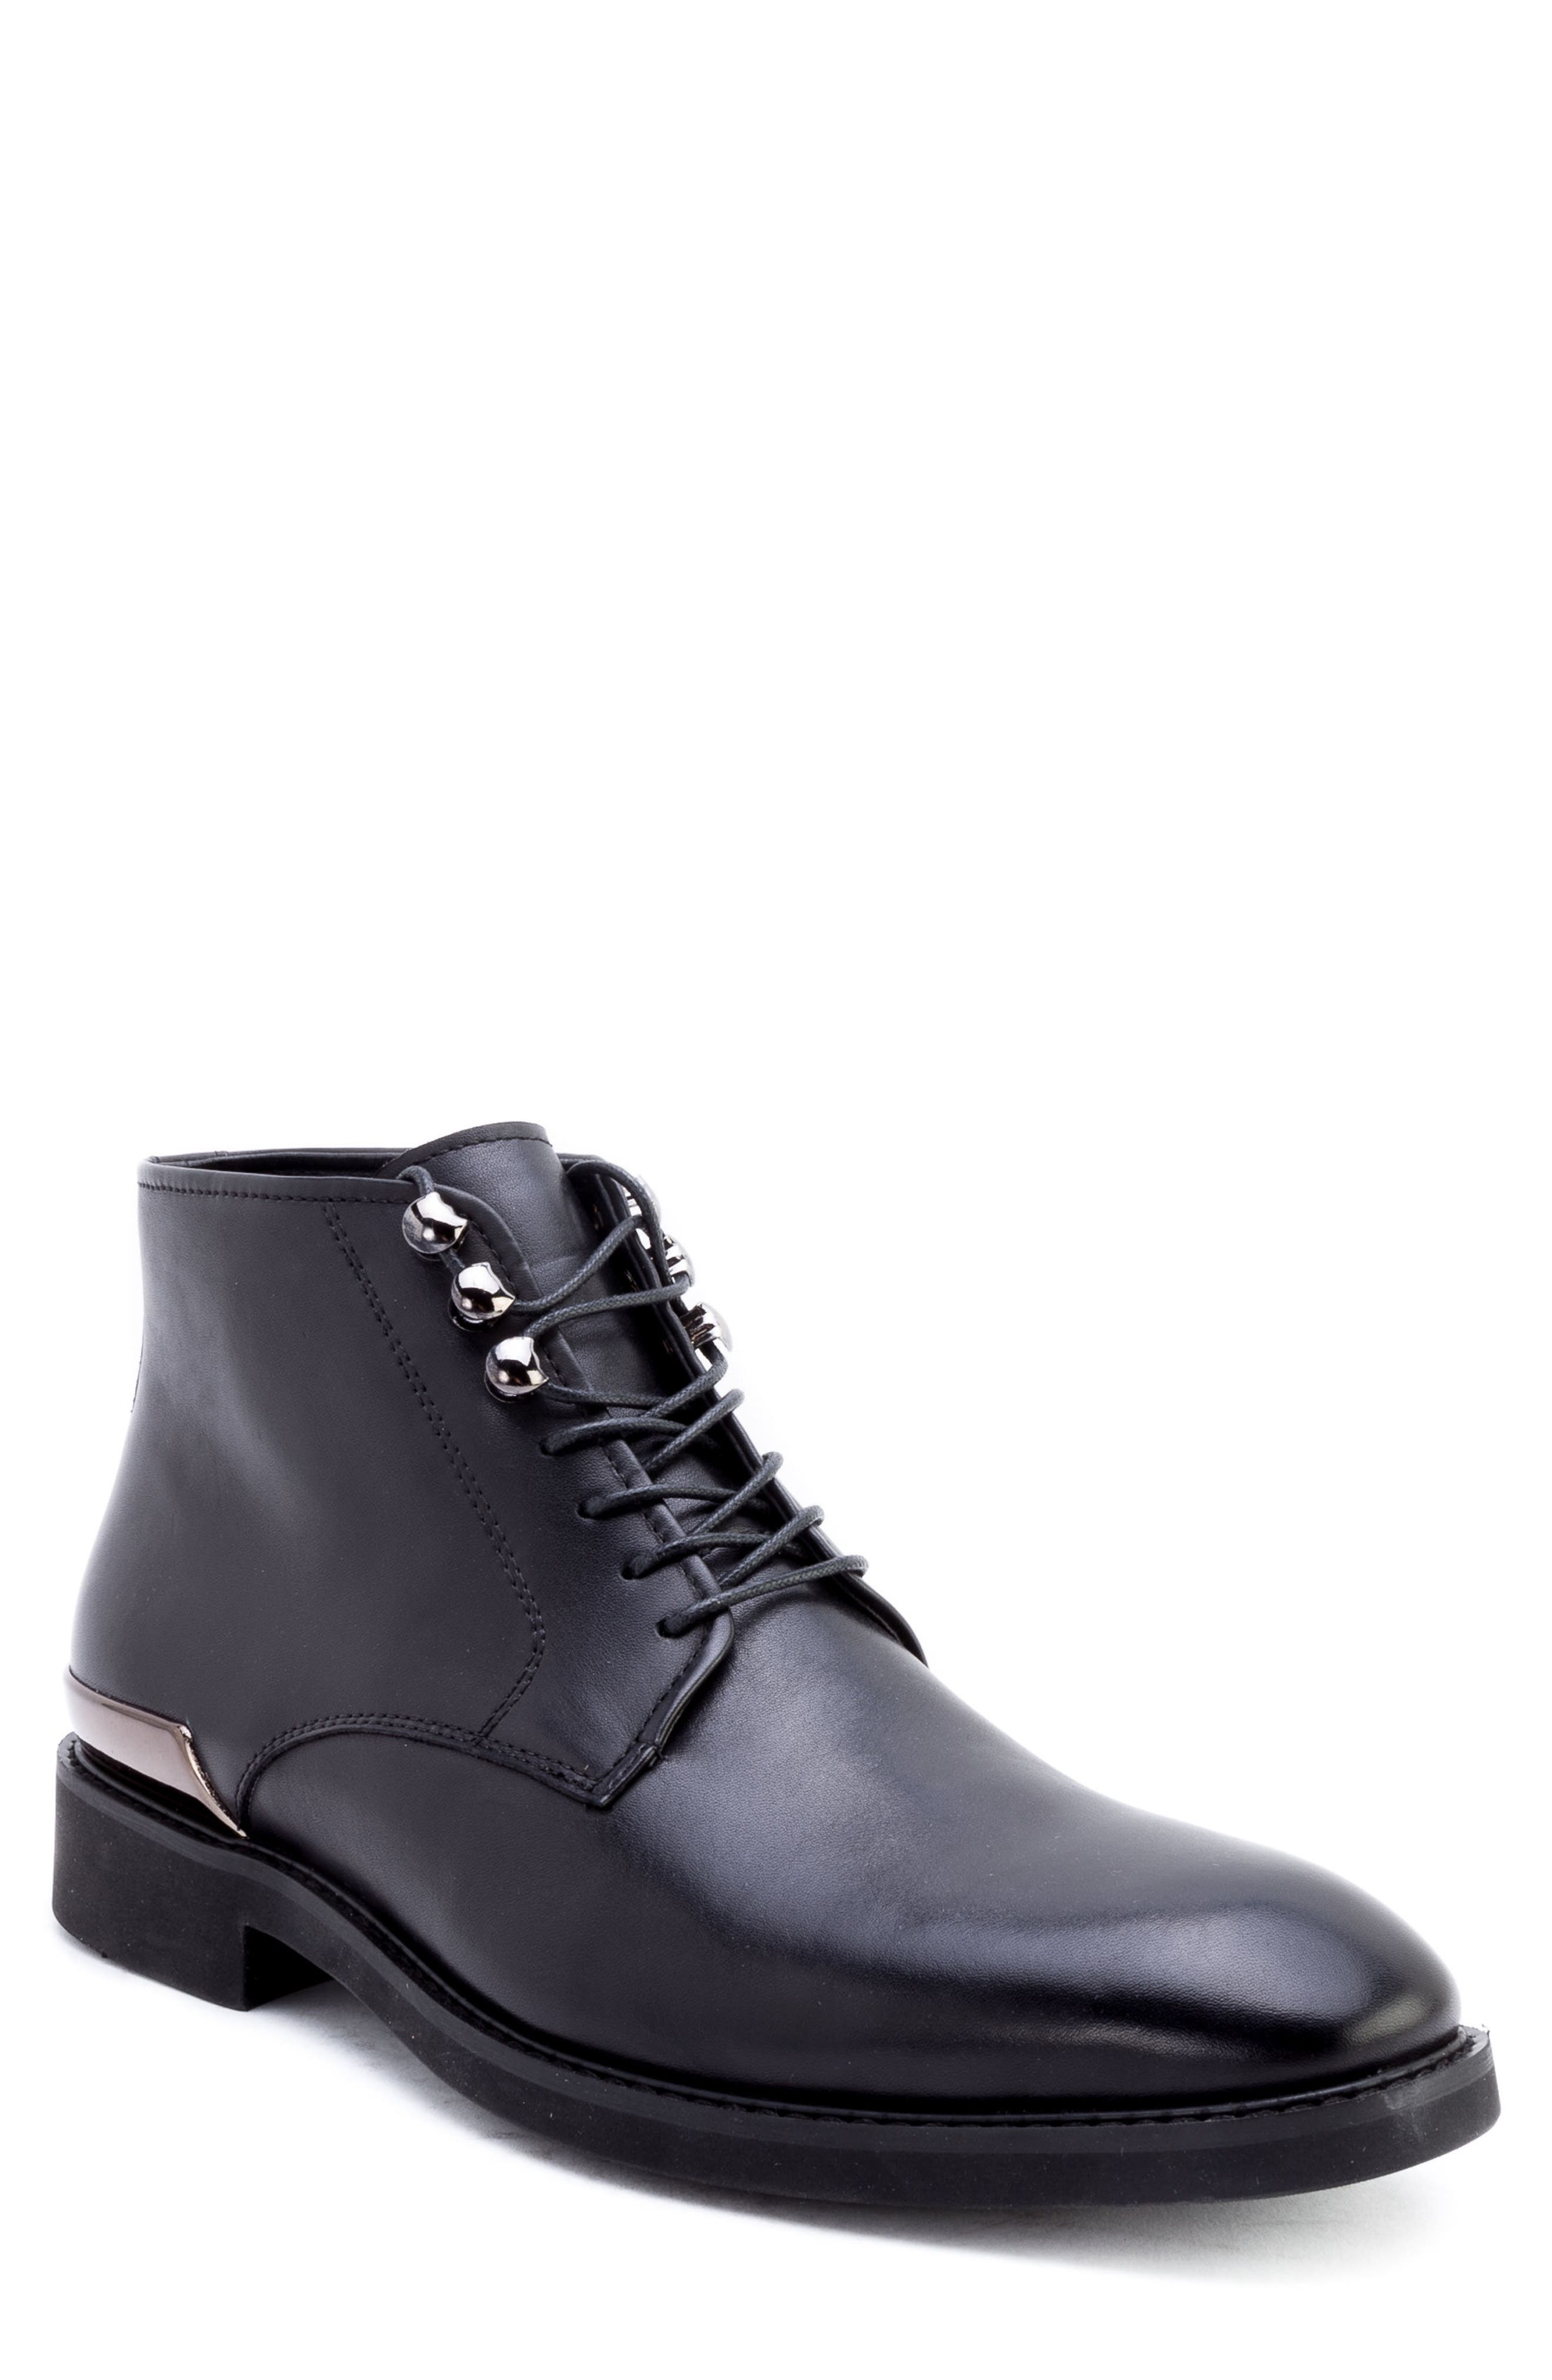 Soland Boot,                         Main,                         color, BLACK LEATHER